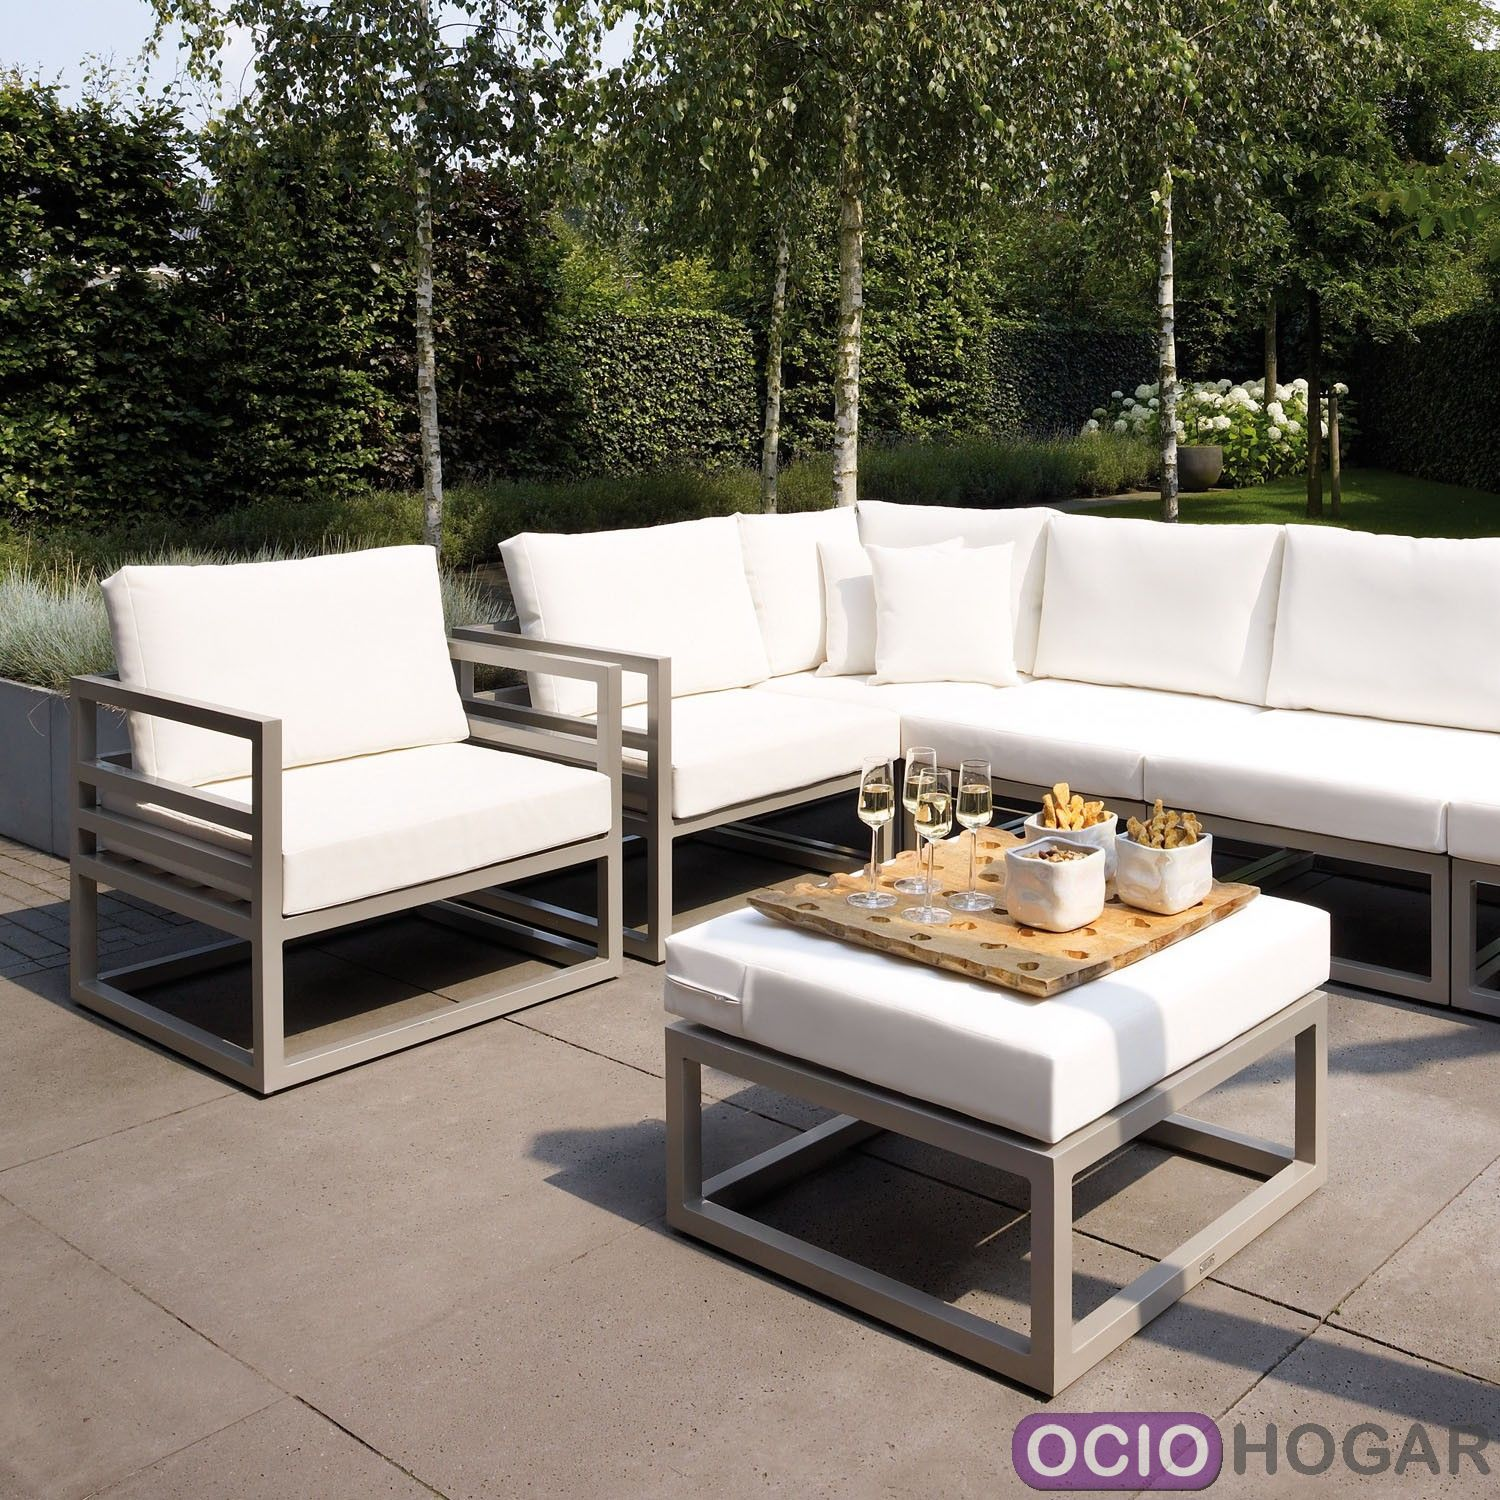 Sofas jardin stunning collection big enuf jdv with sofas for Sofa rinconera exterior